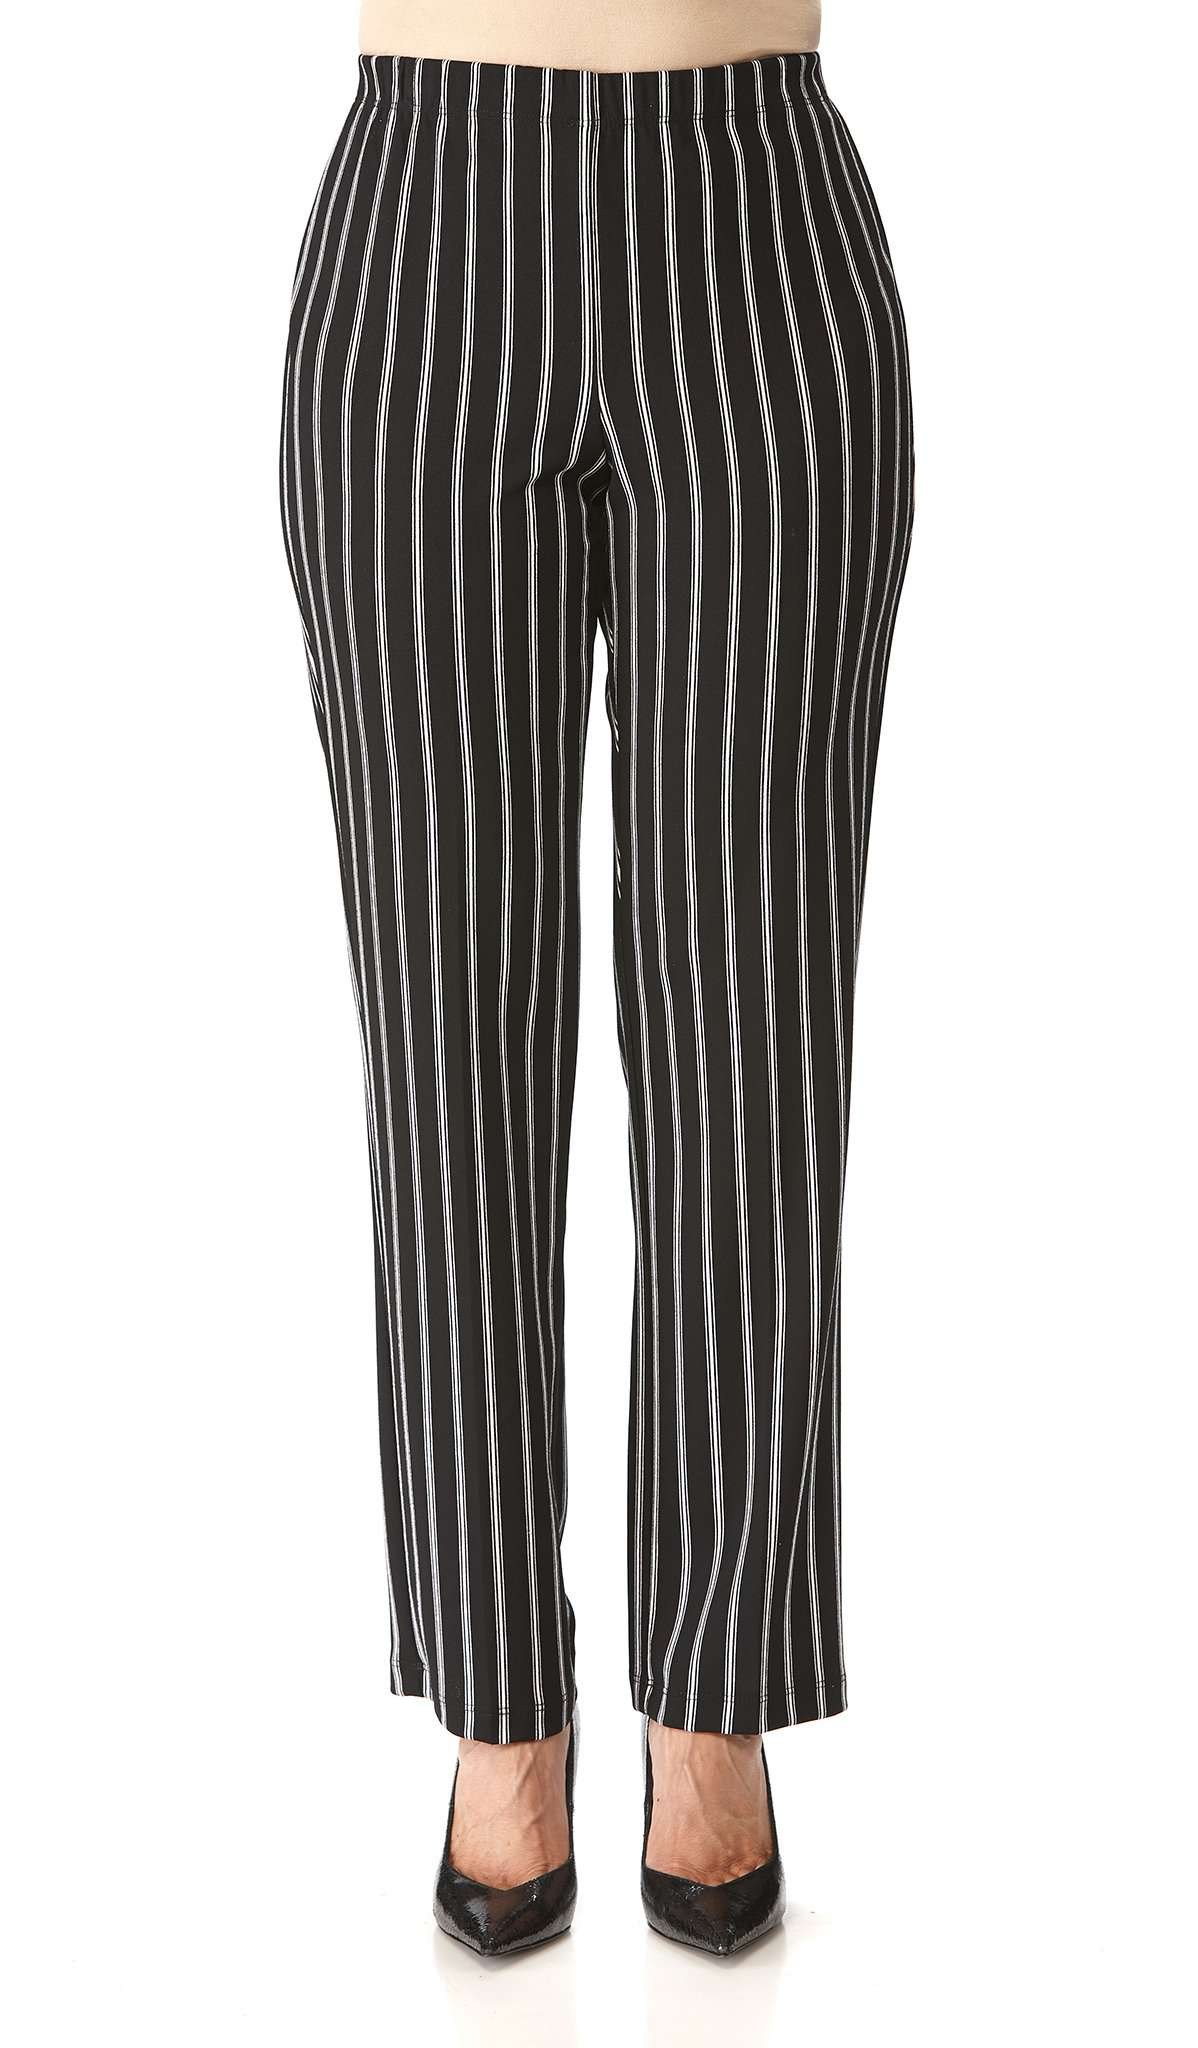 Women's White Pinstriped Black Pants - Yvonne Marie - Yvonne Marie